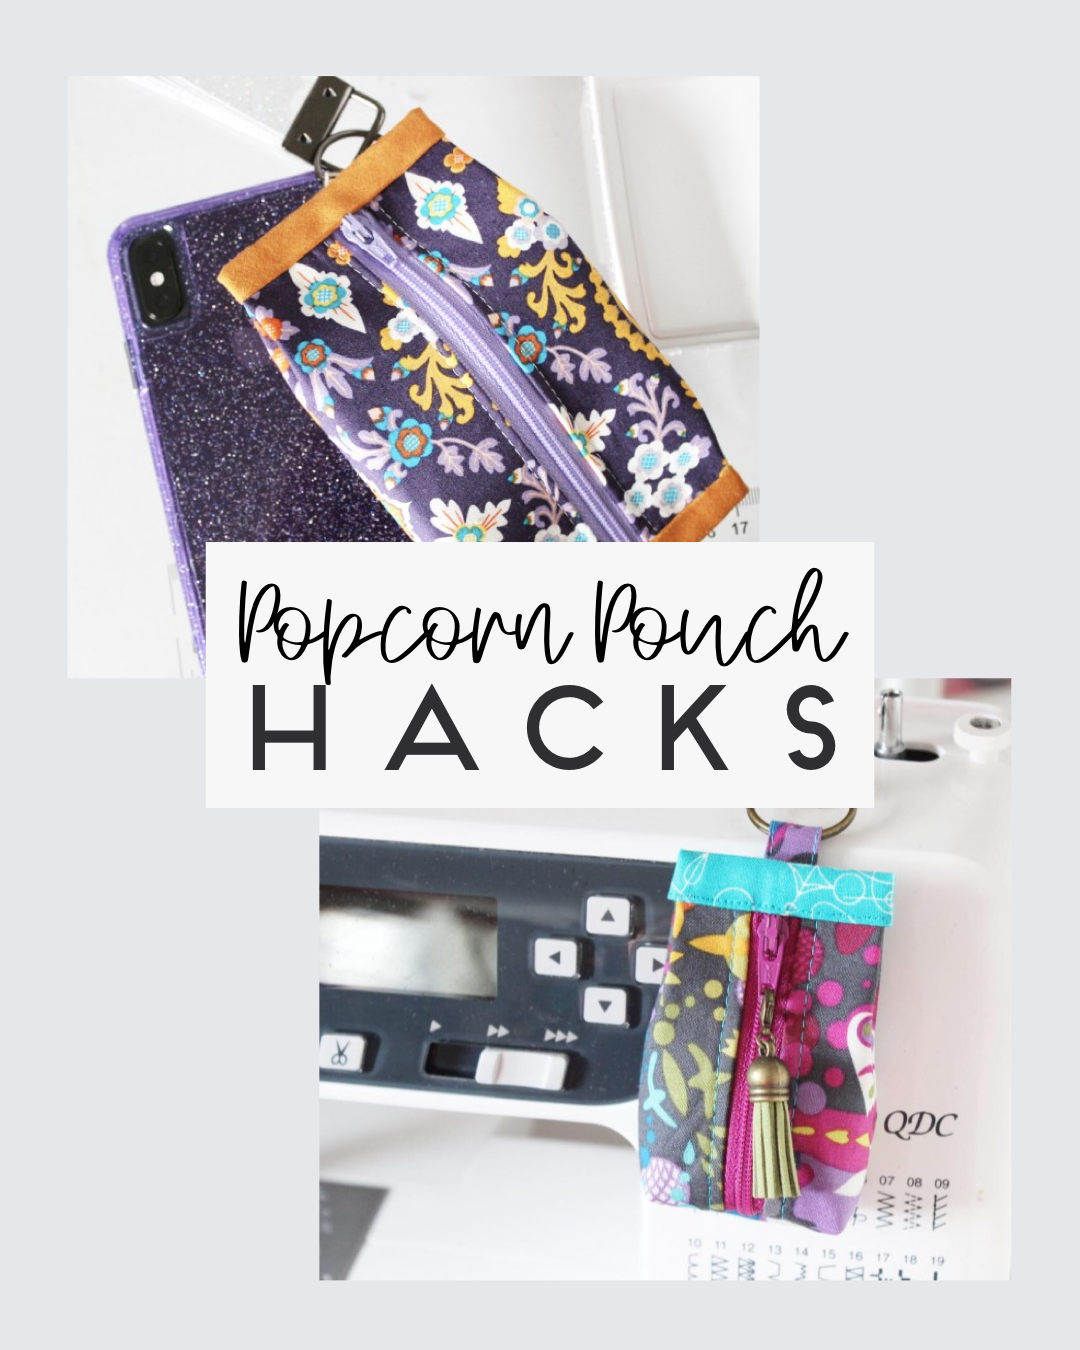 Image of HACKS for Popcorn Pouch Pattern